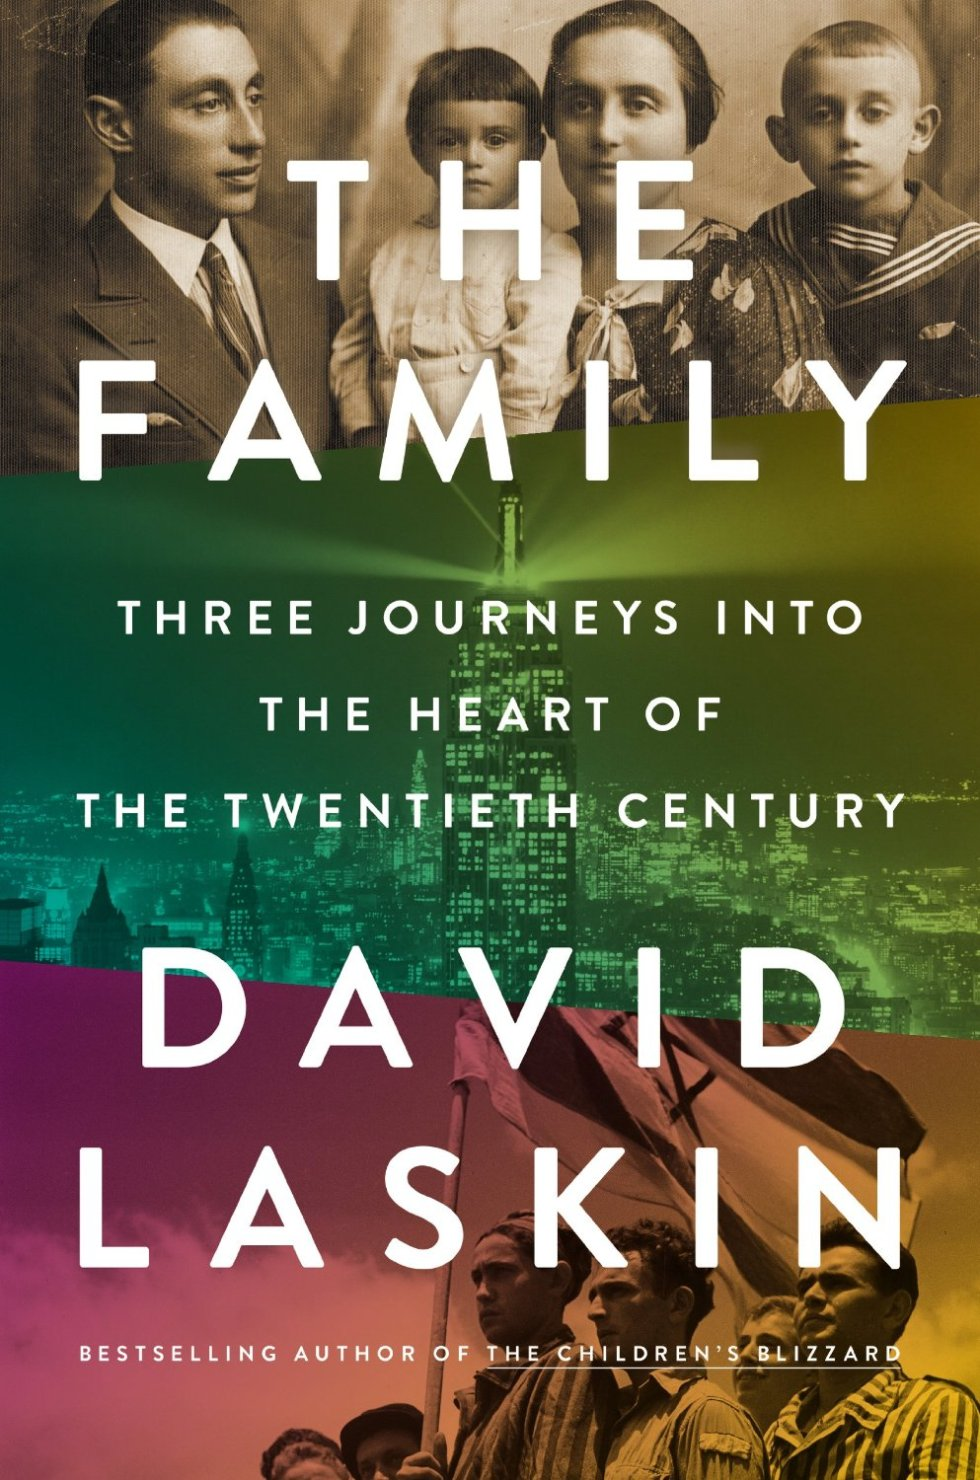 laskin book cover